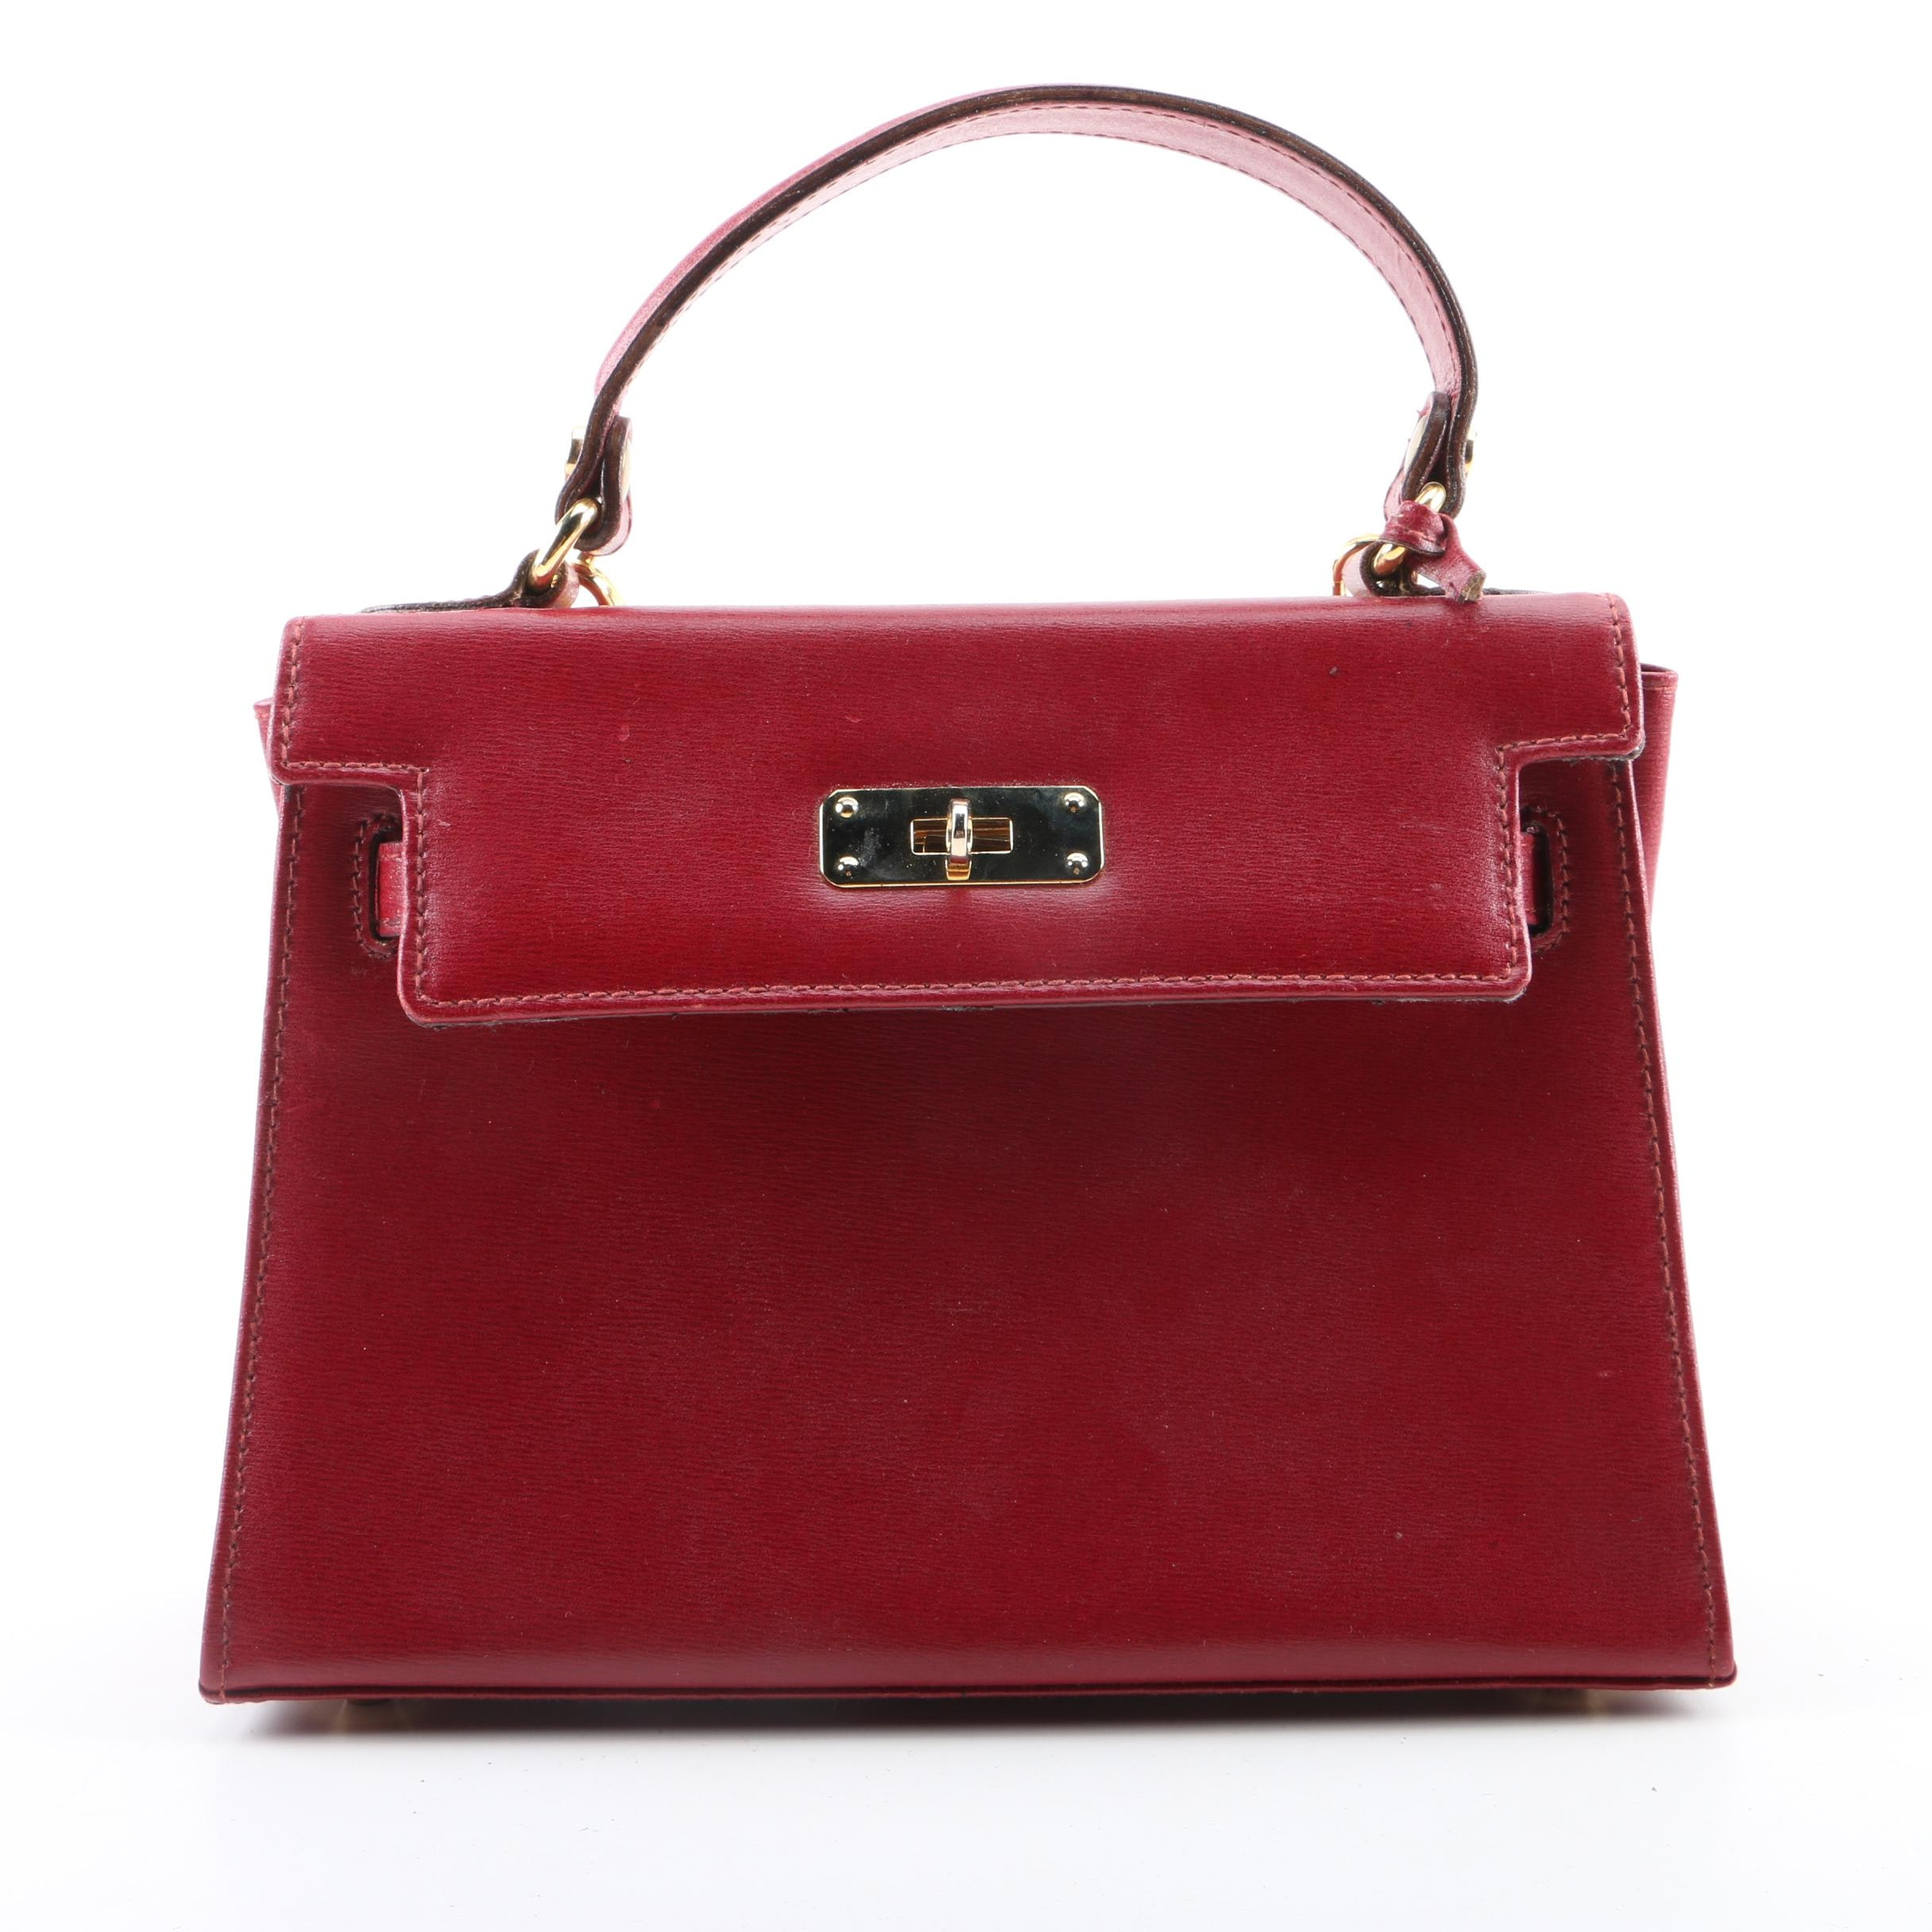 Vintage Aleda Red Leather Satchel, Made in Italy